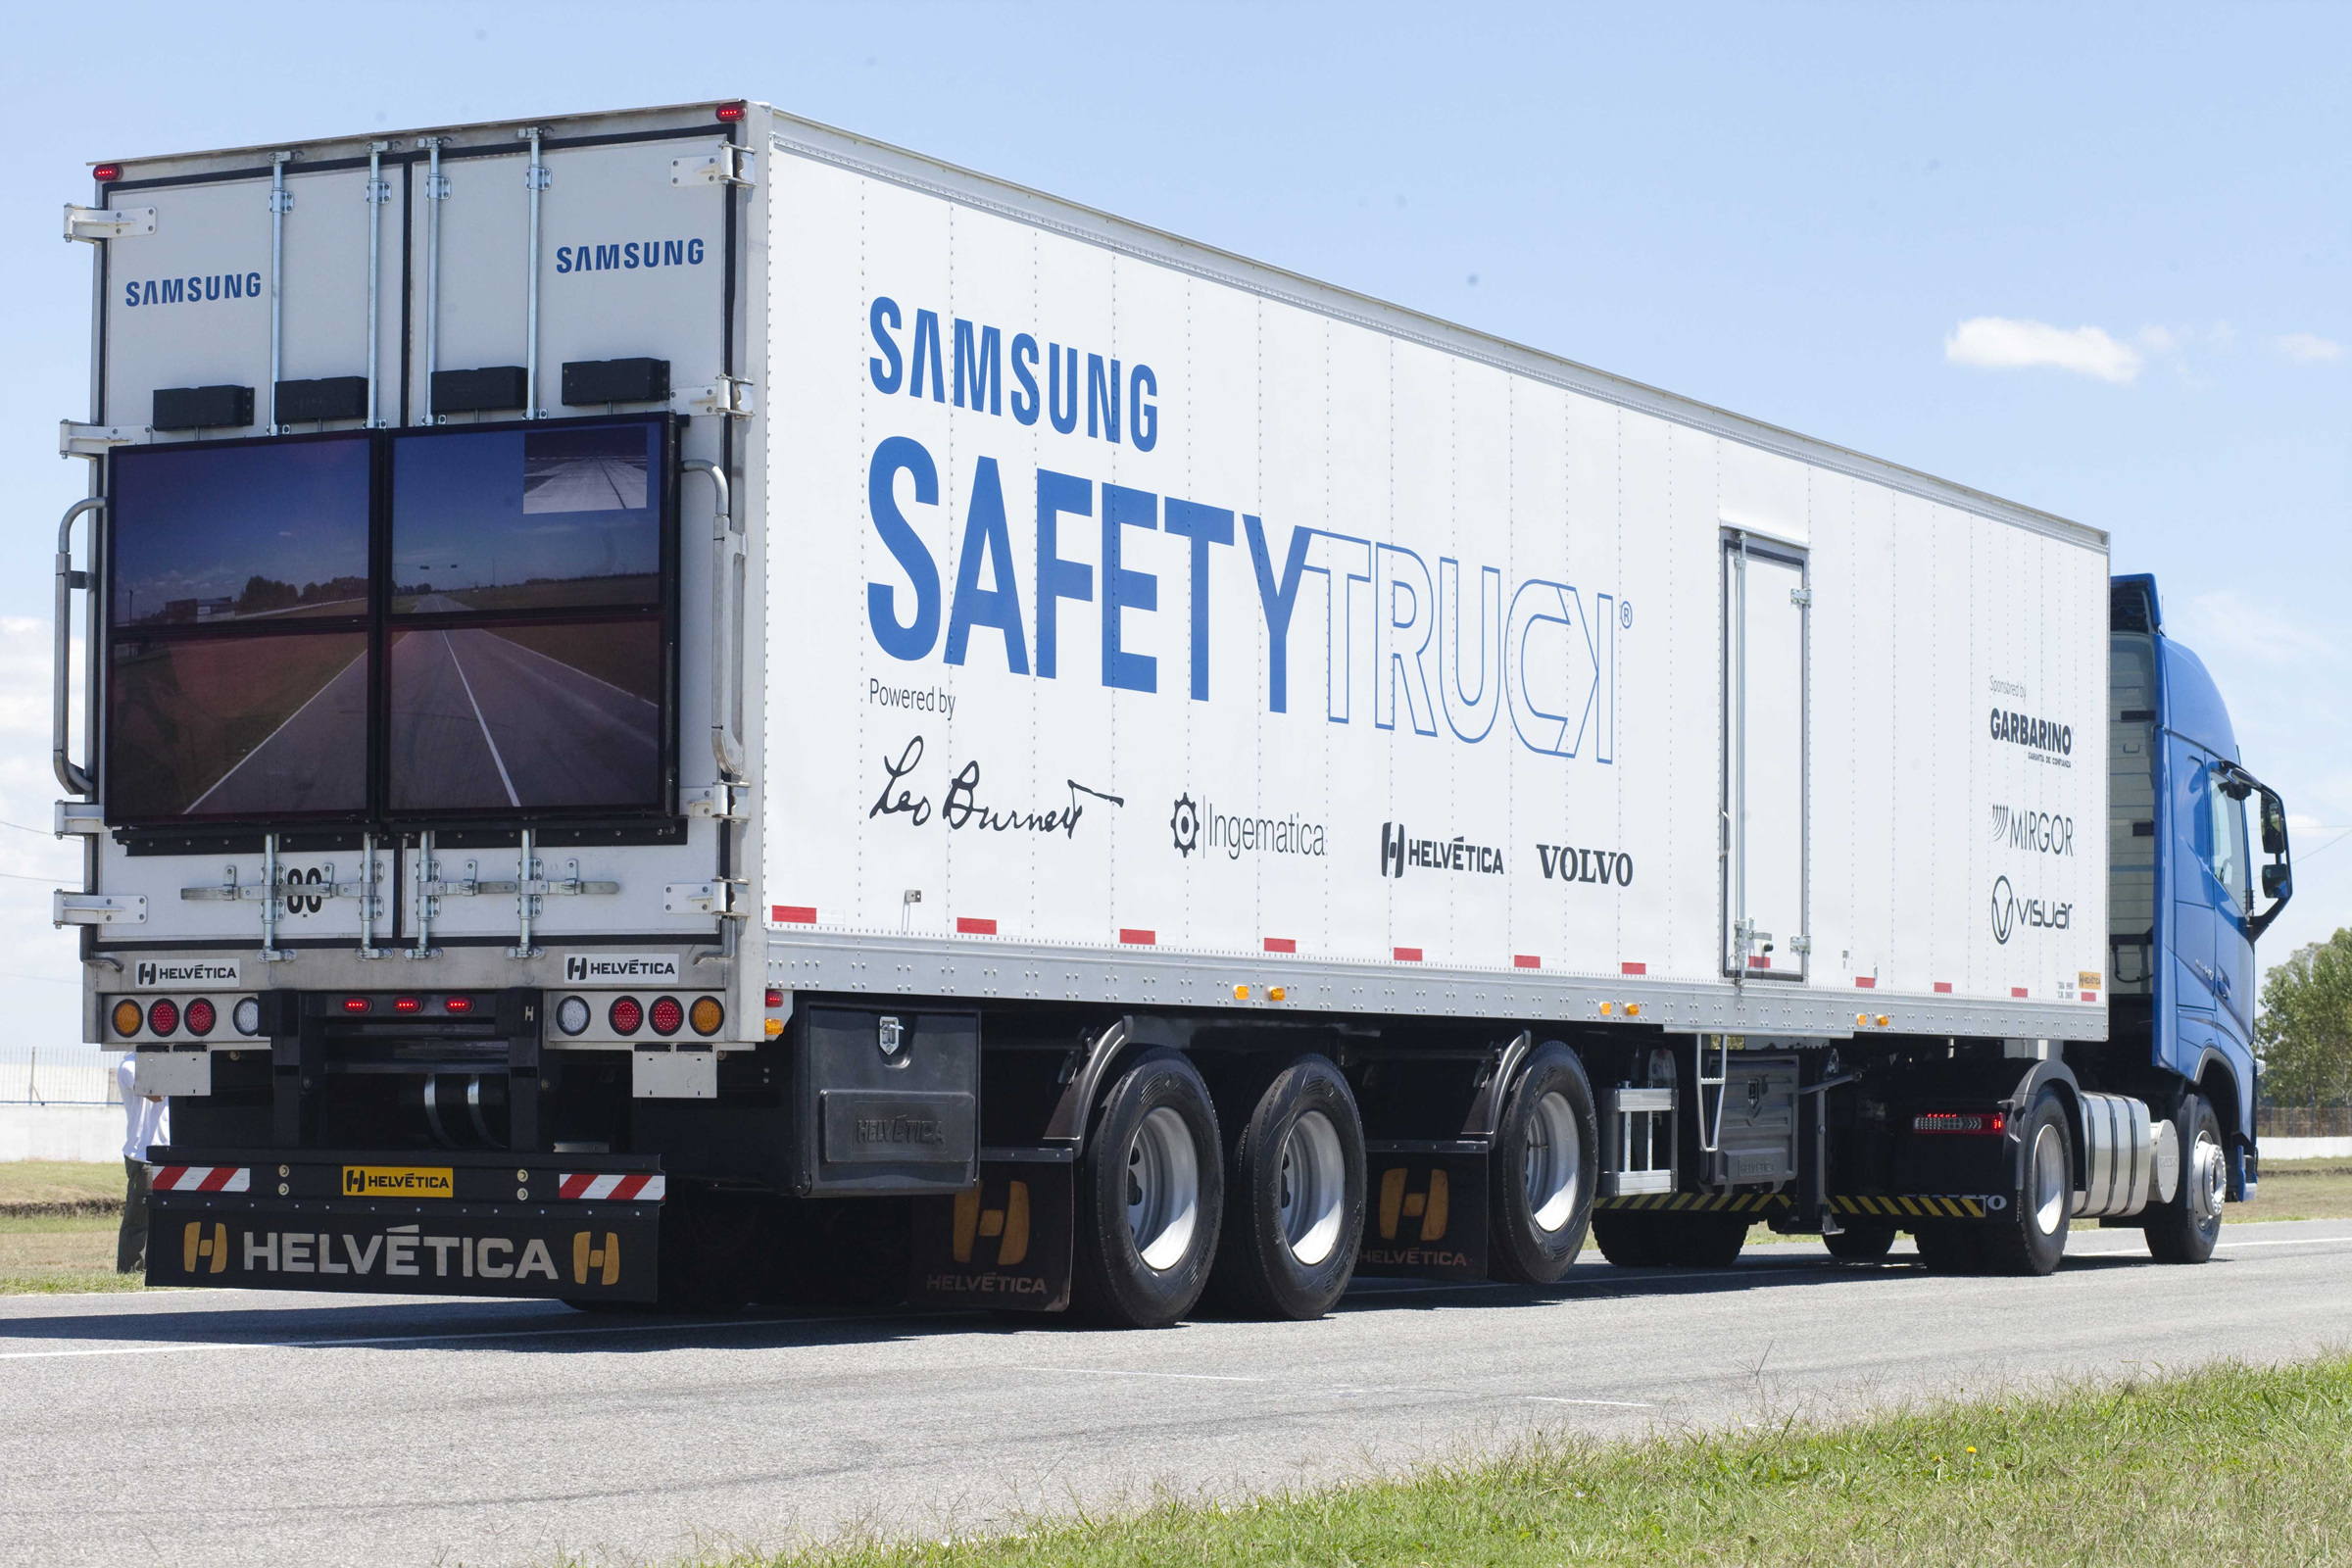 The new 'safety truck' lets vehicles see what's happening on the road ahead.